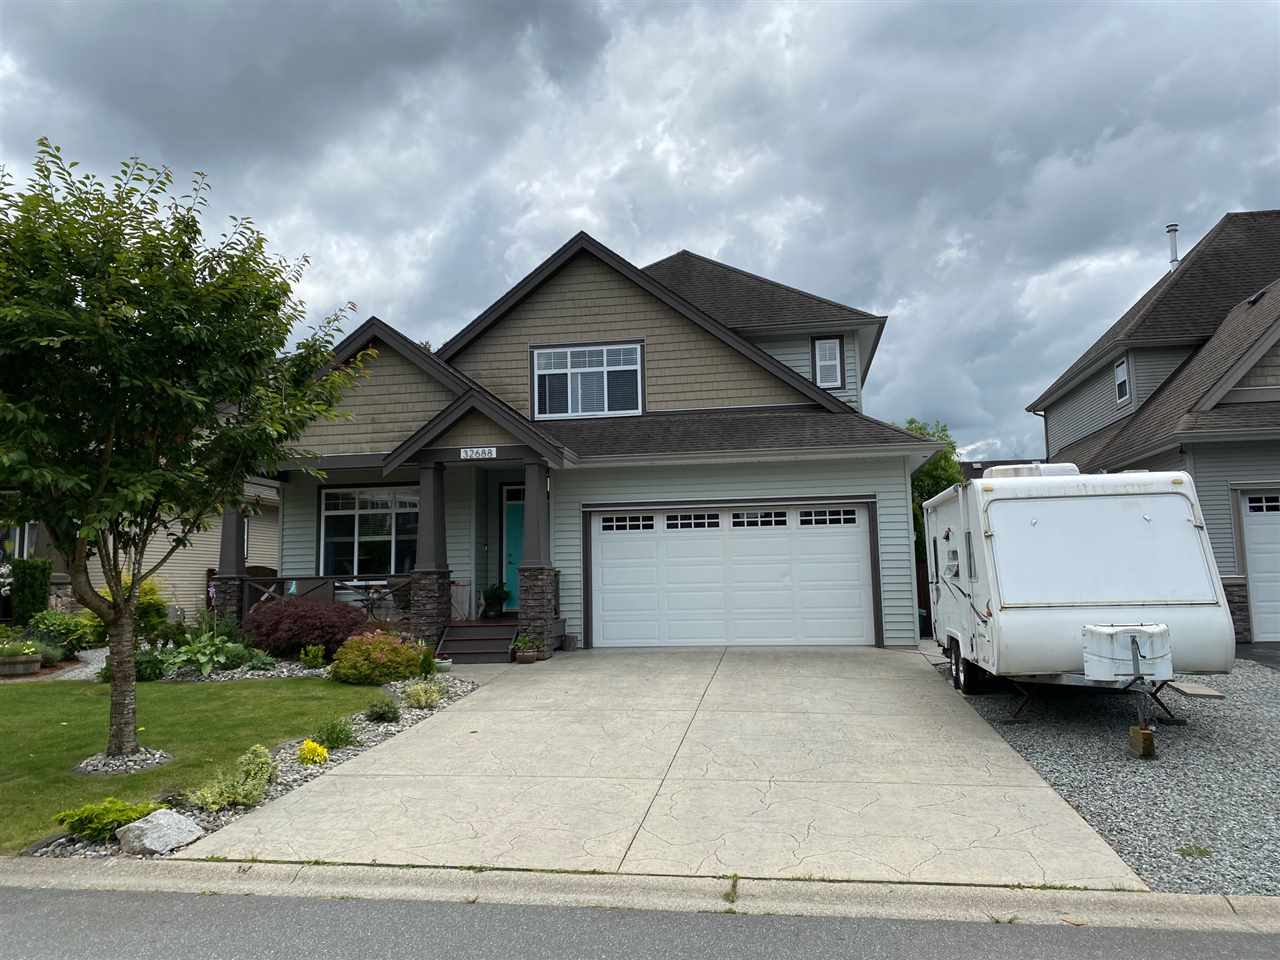 32688 APPLEBY COURT - Mission BC House/Single Family for sale, 4 Bedrooms (R2474600) - #1